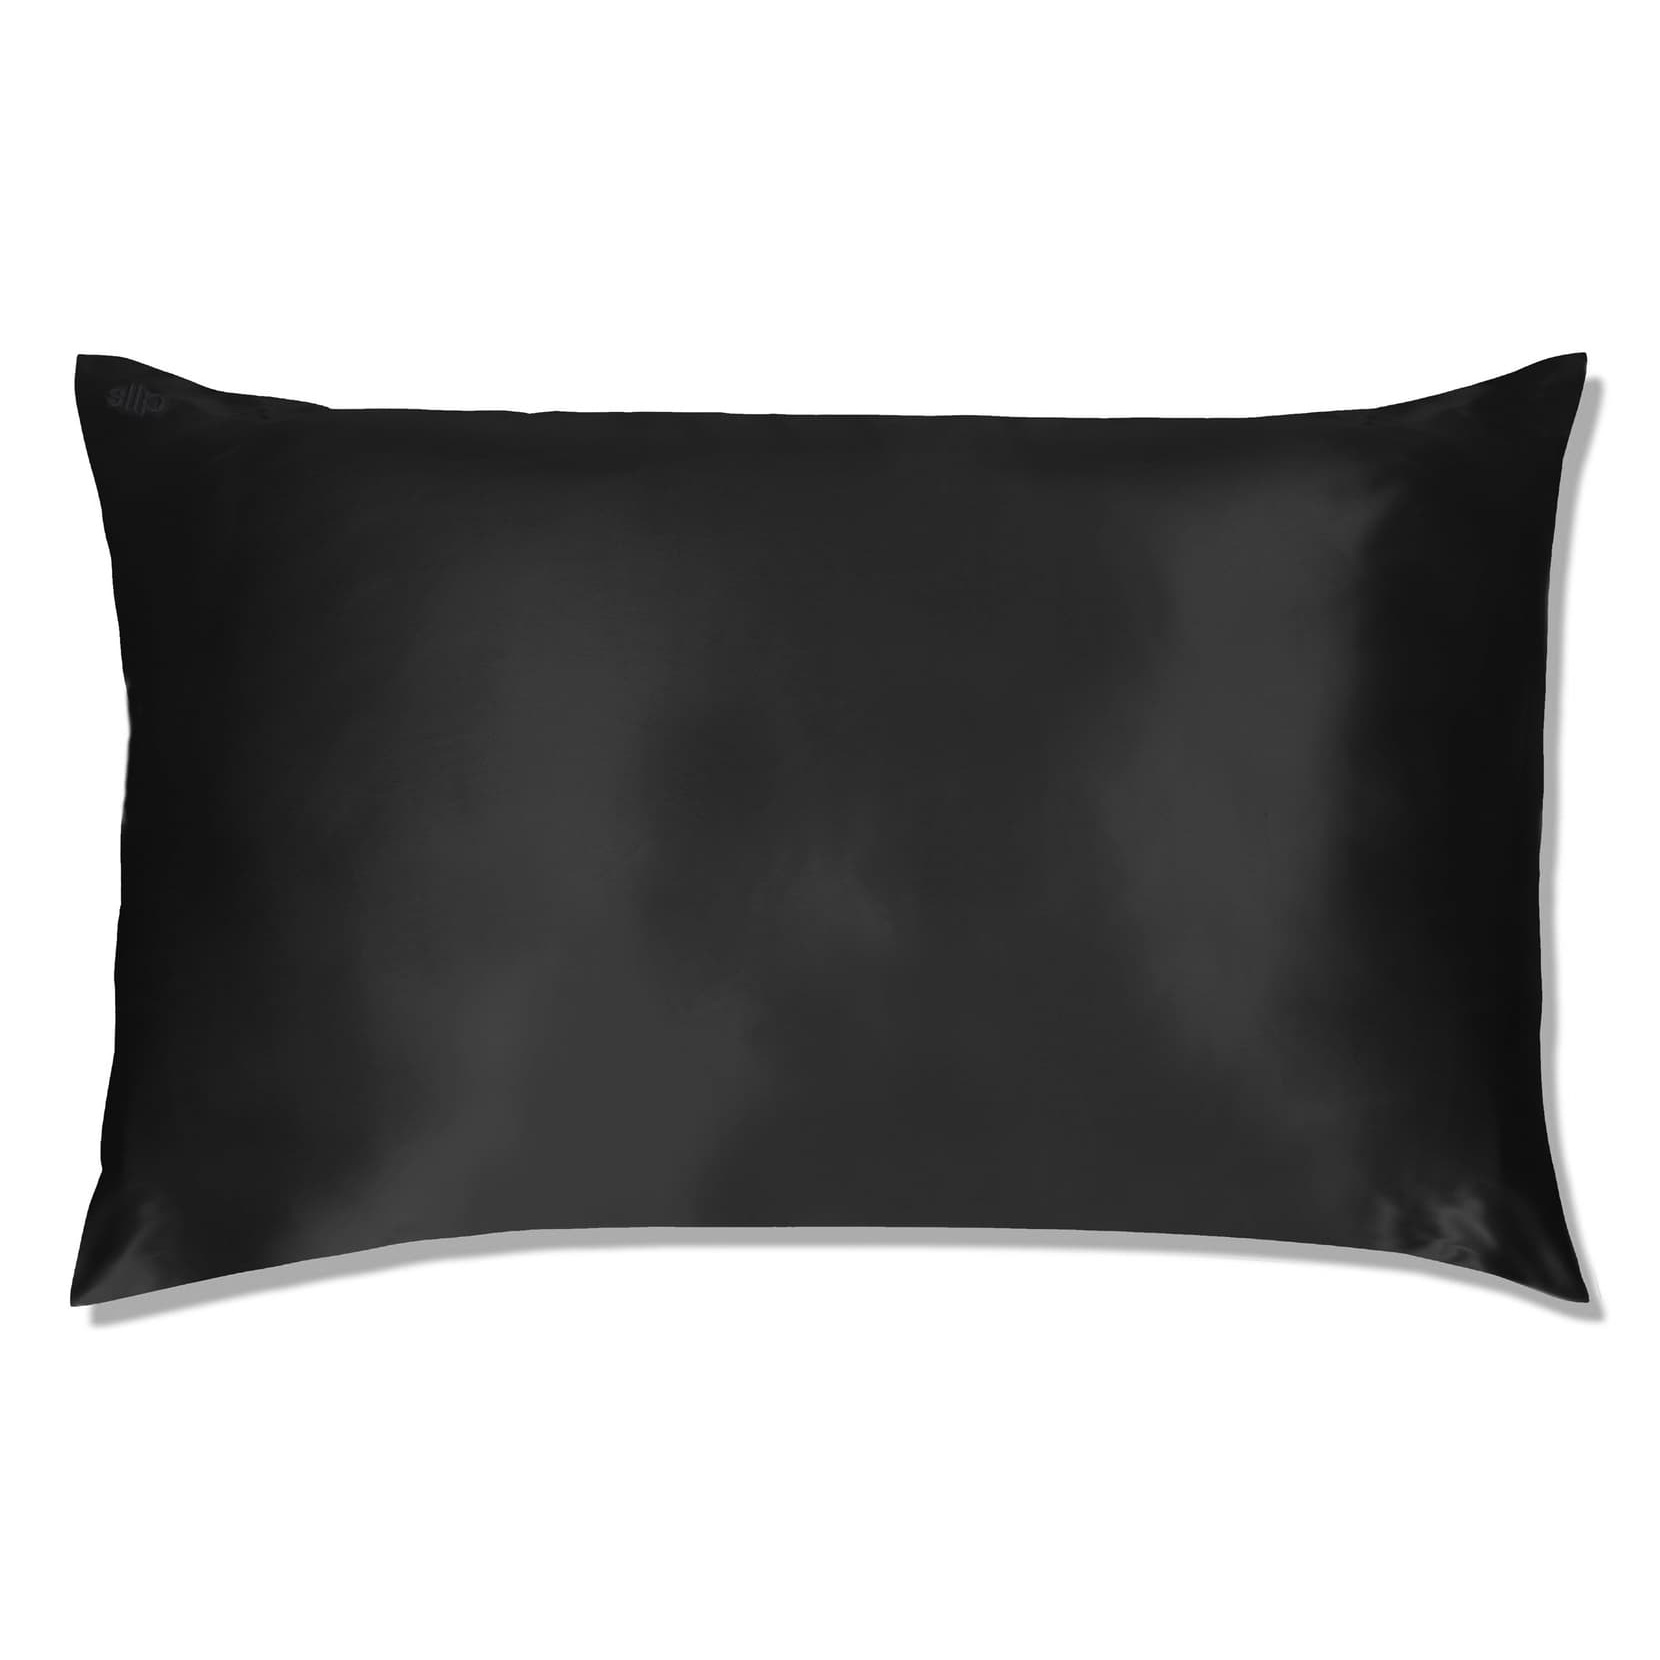 slip™ for beauty sleep Slipsilk™ Pure Silk Pillowcase